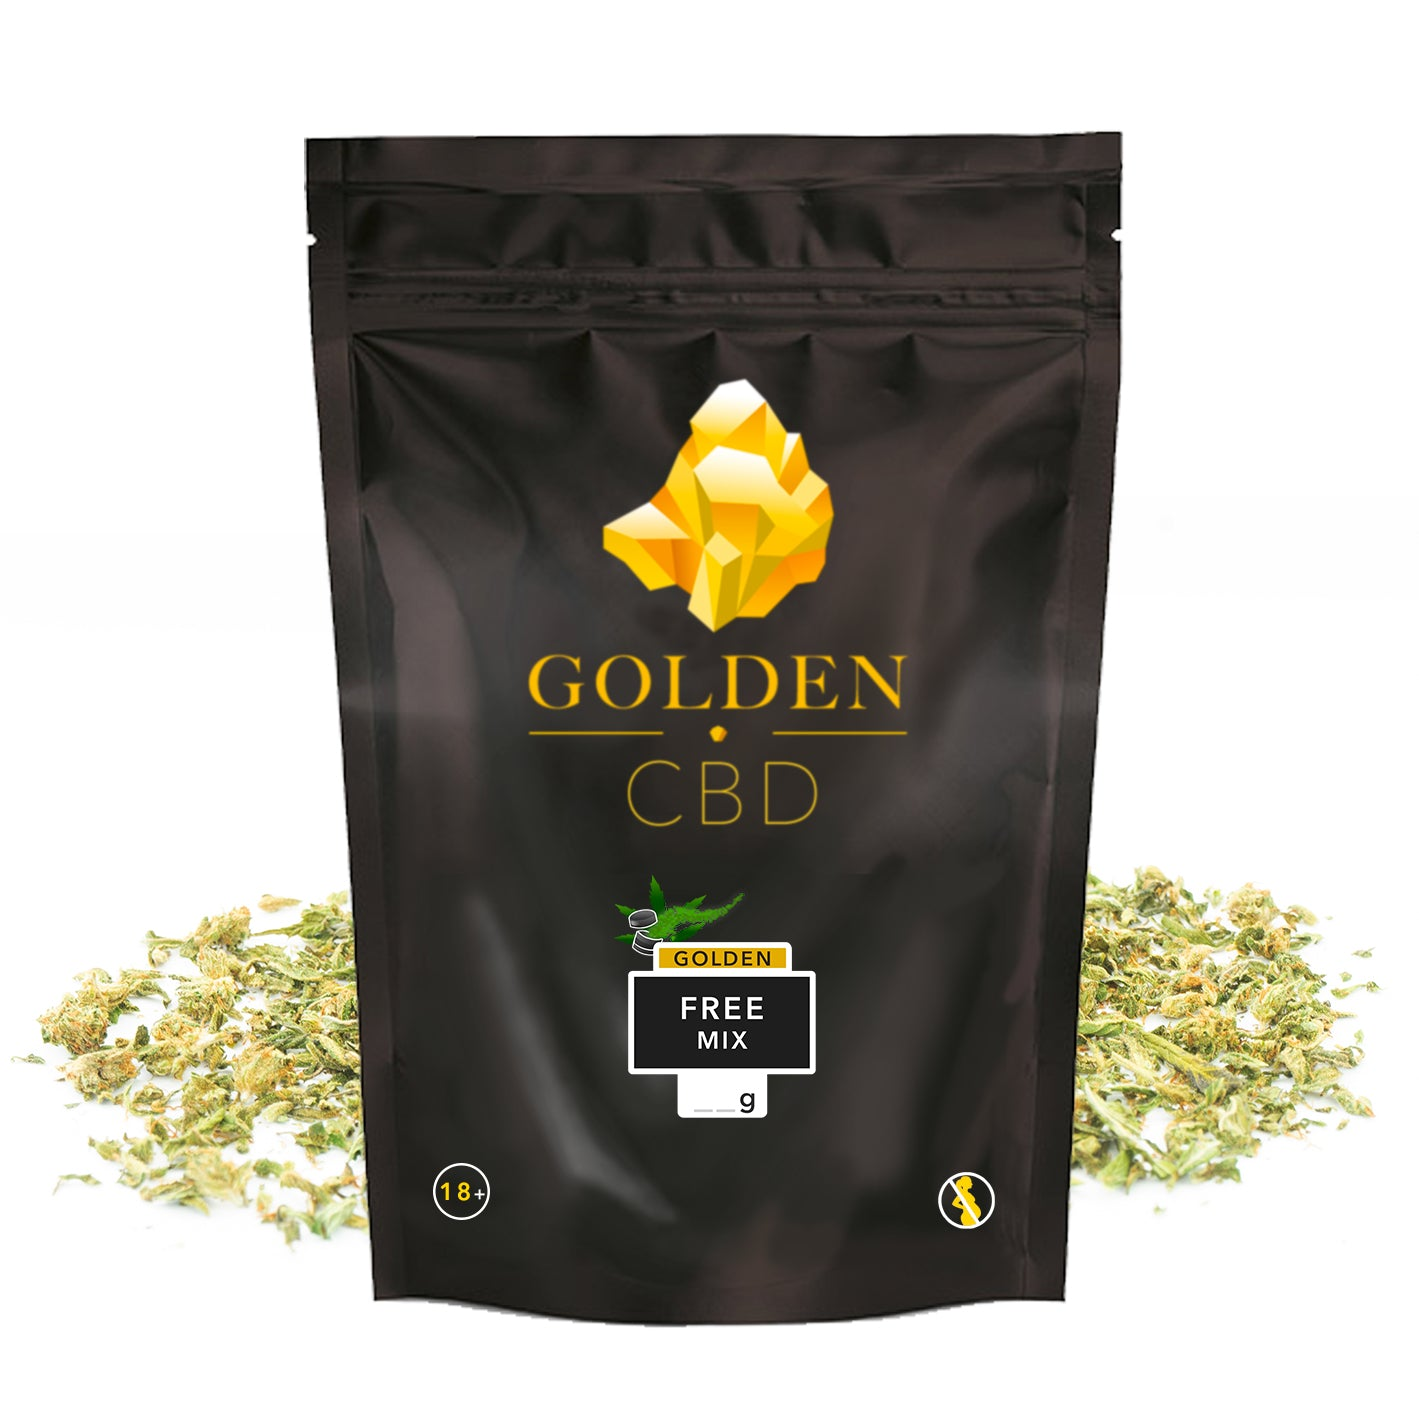 Golden Free Mix - CBD